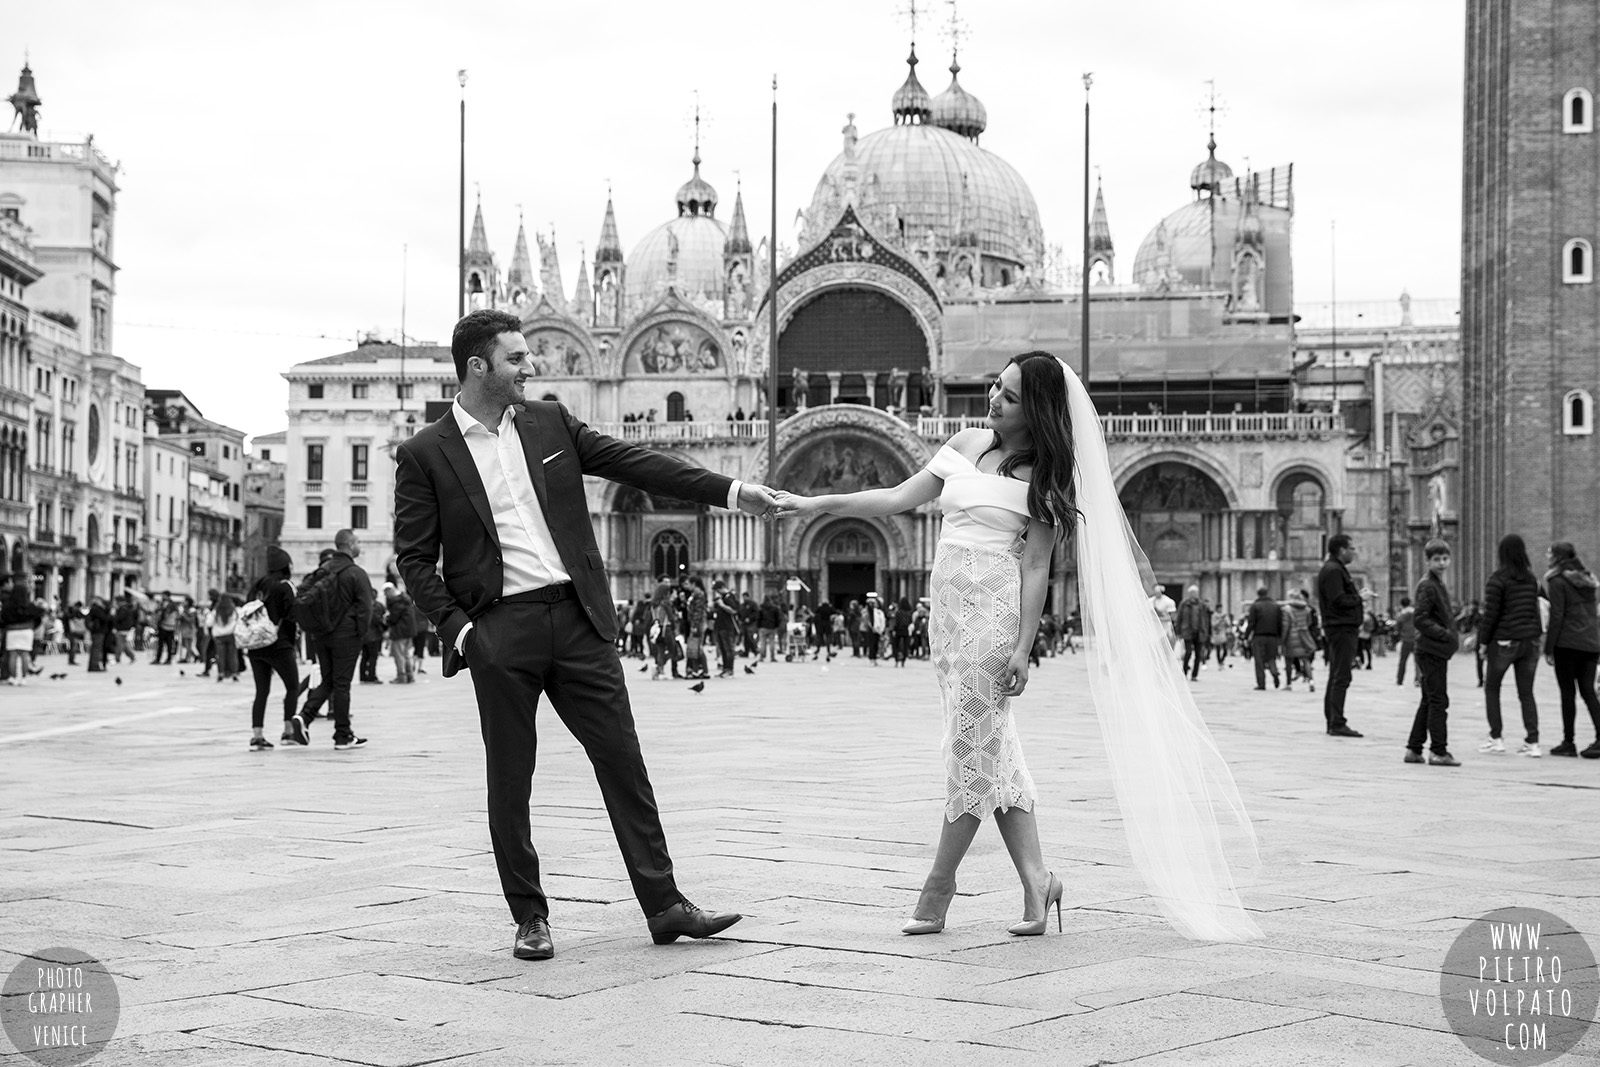 venice-wedding-photographer-couple-romantic-honeymoon-photoshoot-tour-20161005_08